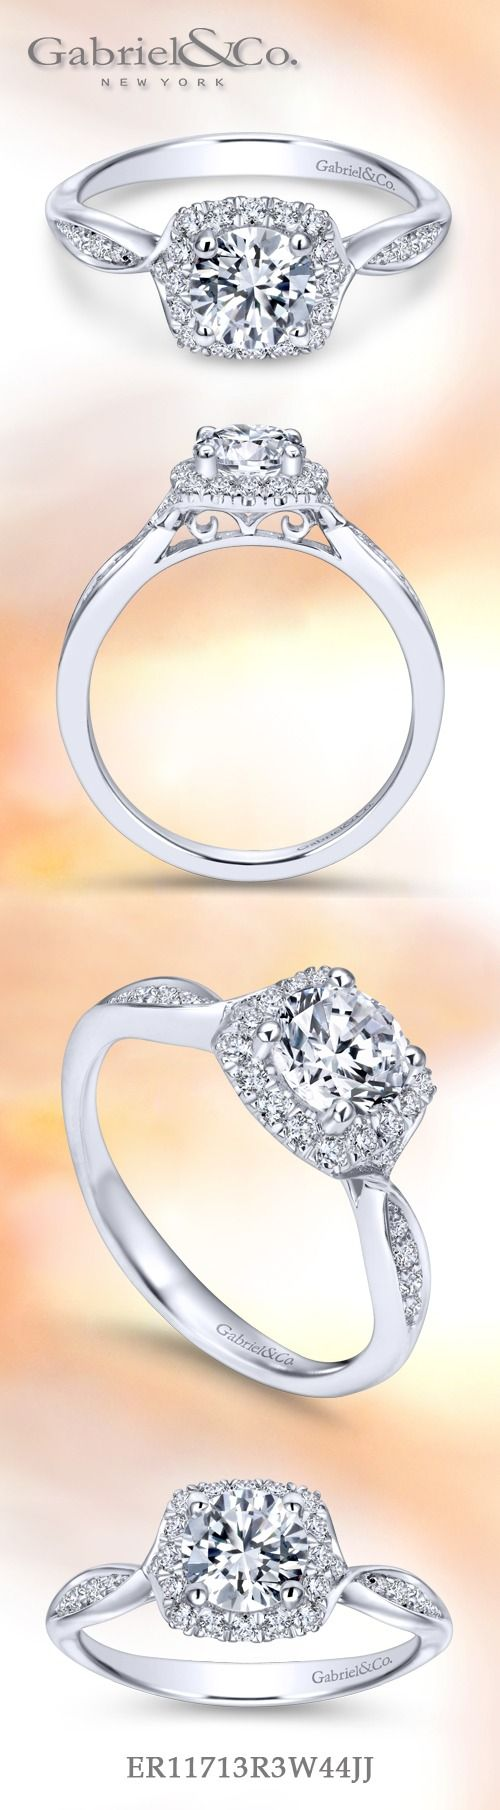 Gabriel & Co. - Voted #1 Most Preferred Fine Jewelry and Bridal Brand. 14k White Gold Round Halo  Engagement Ring  that creates an everlasting halo and sweet side channels that give it a delicate flair.